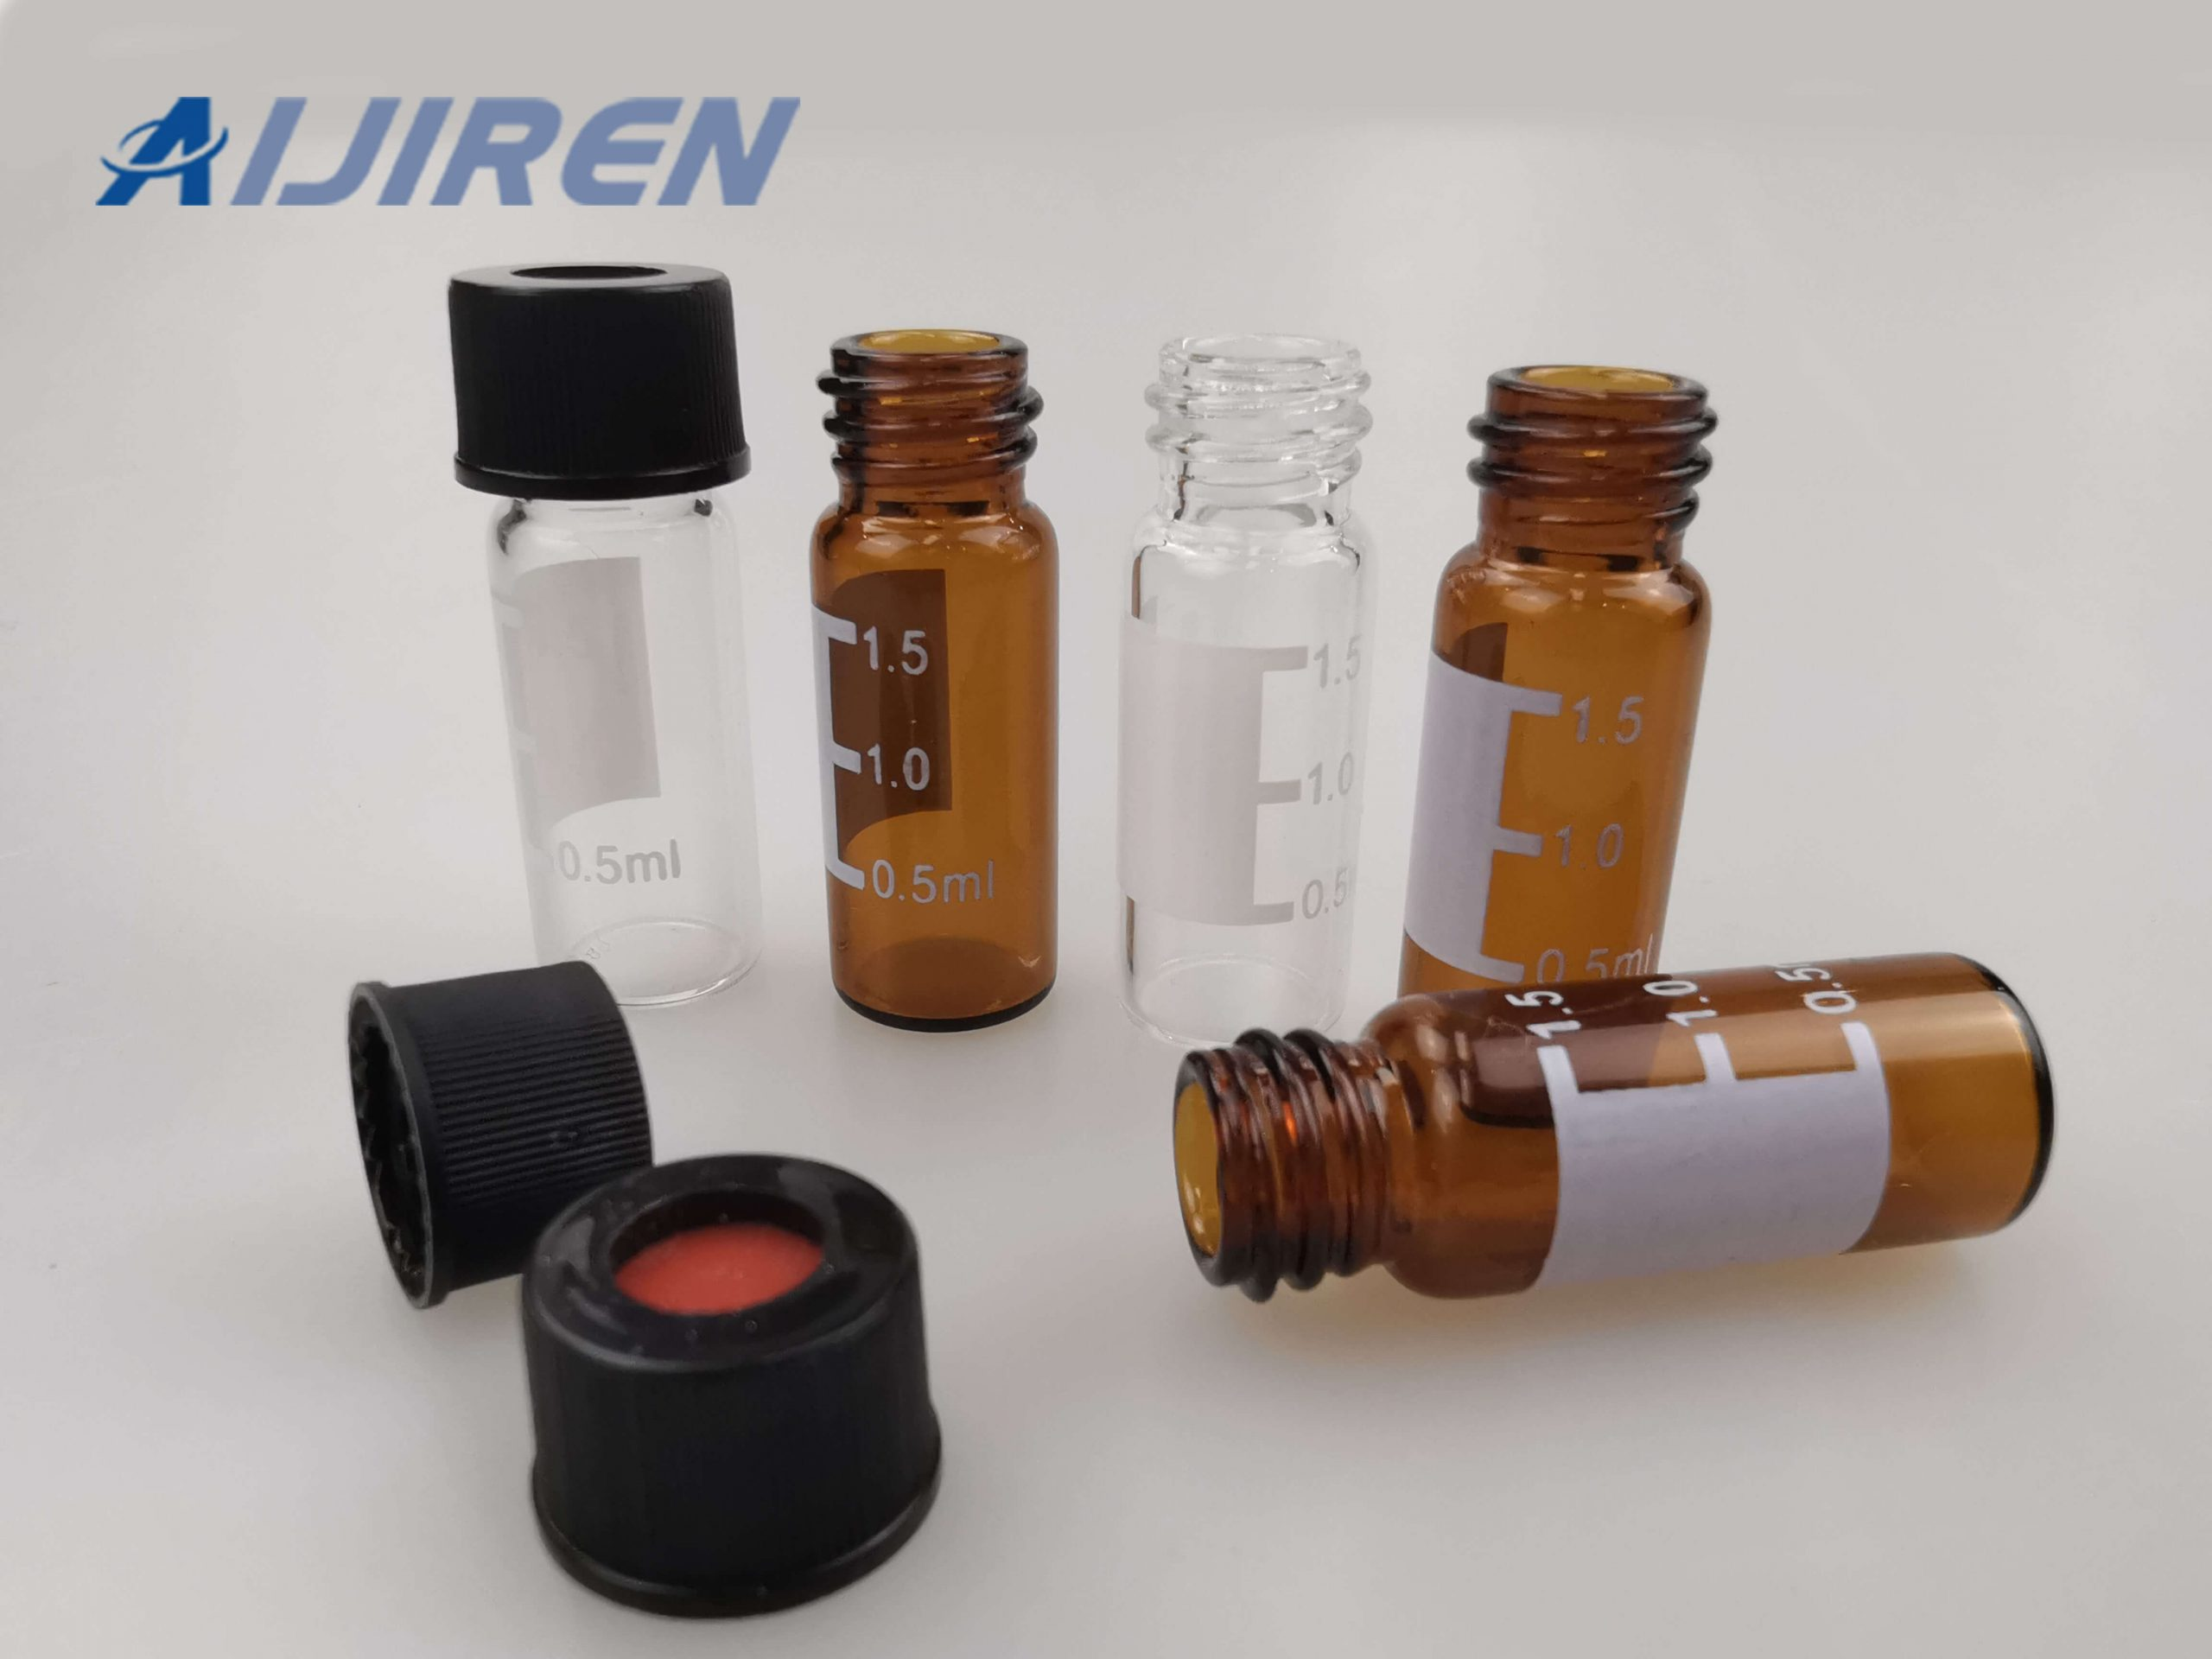 20ml headspace vial8-425 HPLC Glass Vials with Caps for WATERS